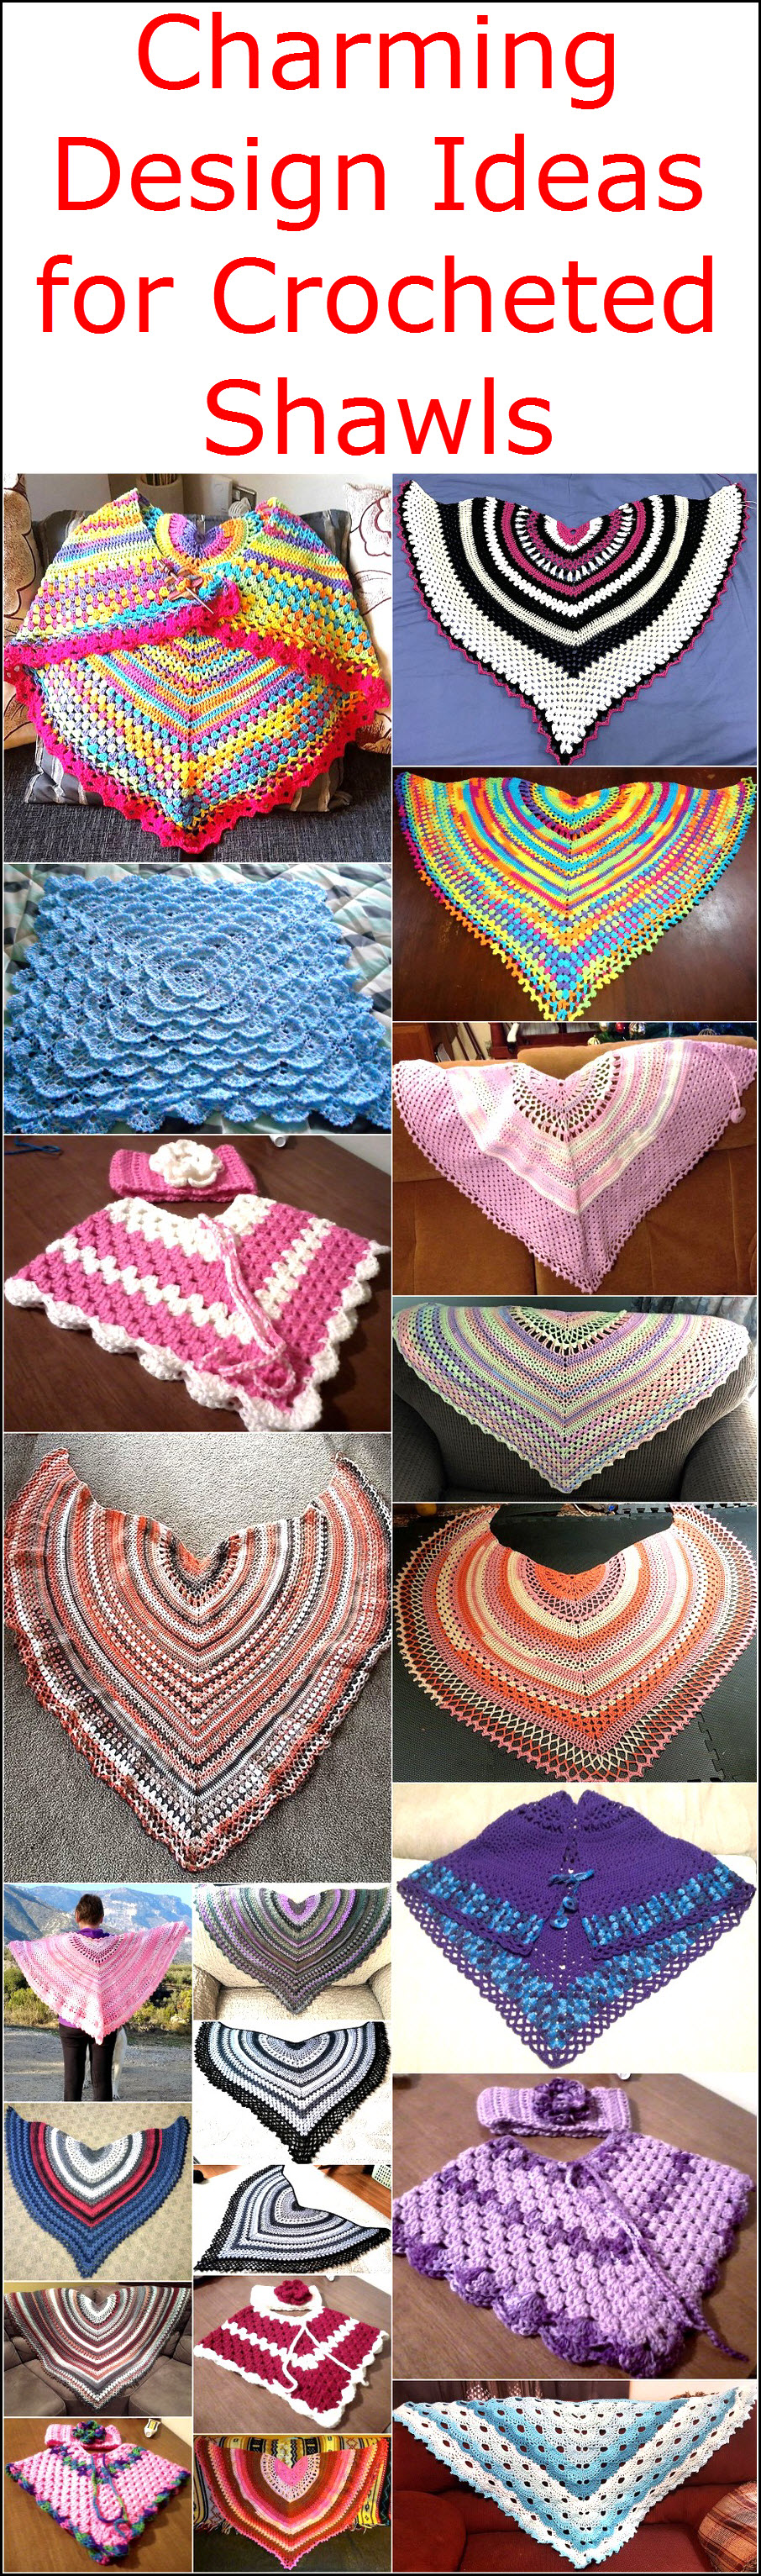 Charming Design Ideas for Crocheted Shawls